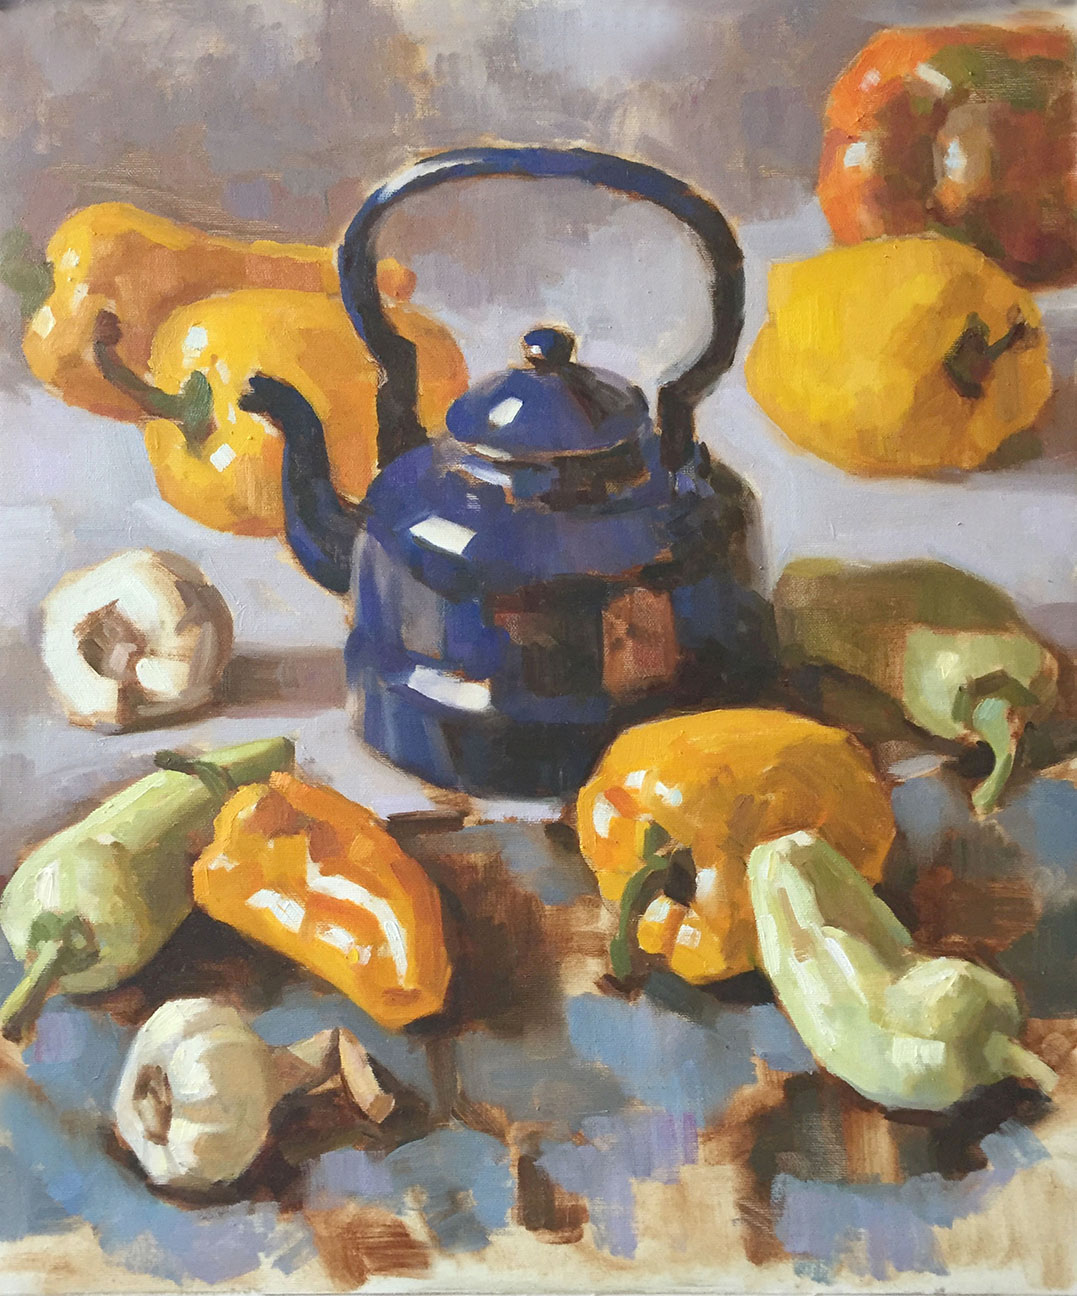 Blue Kettle with Peppers and Garlick   Oil on canvas 50 x 60 cm  2017